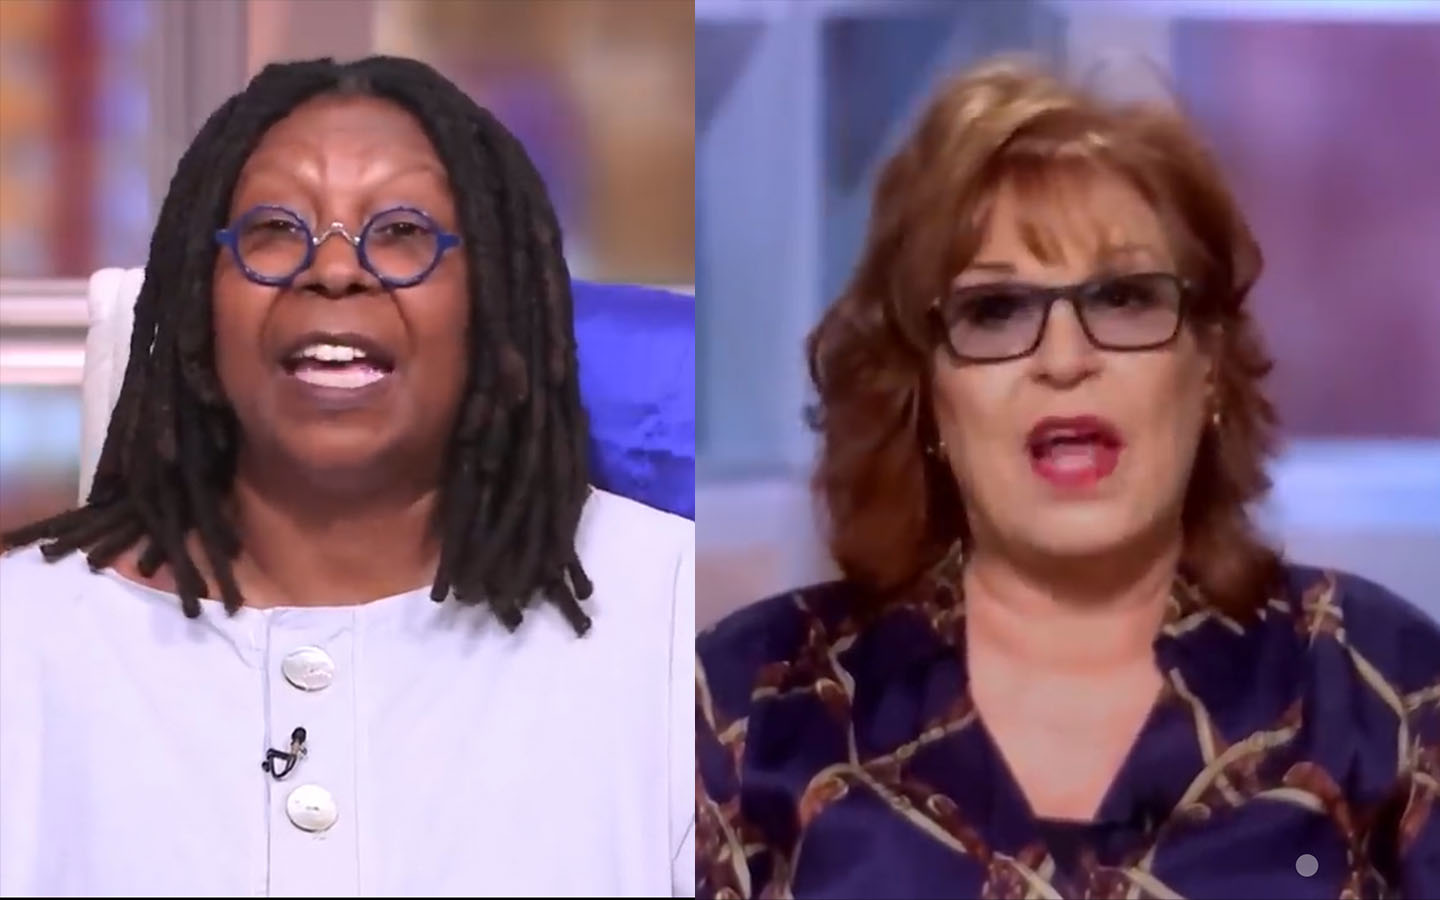 [WATCH] 'The View' Ladies Have a New Totally Crackpot Theory on Trump's COVID Case and It's a Doozy